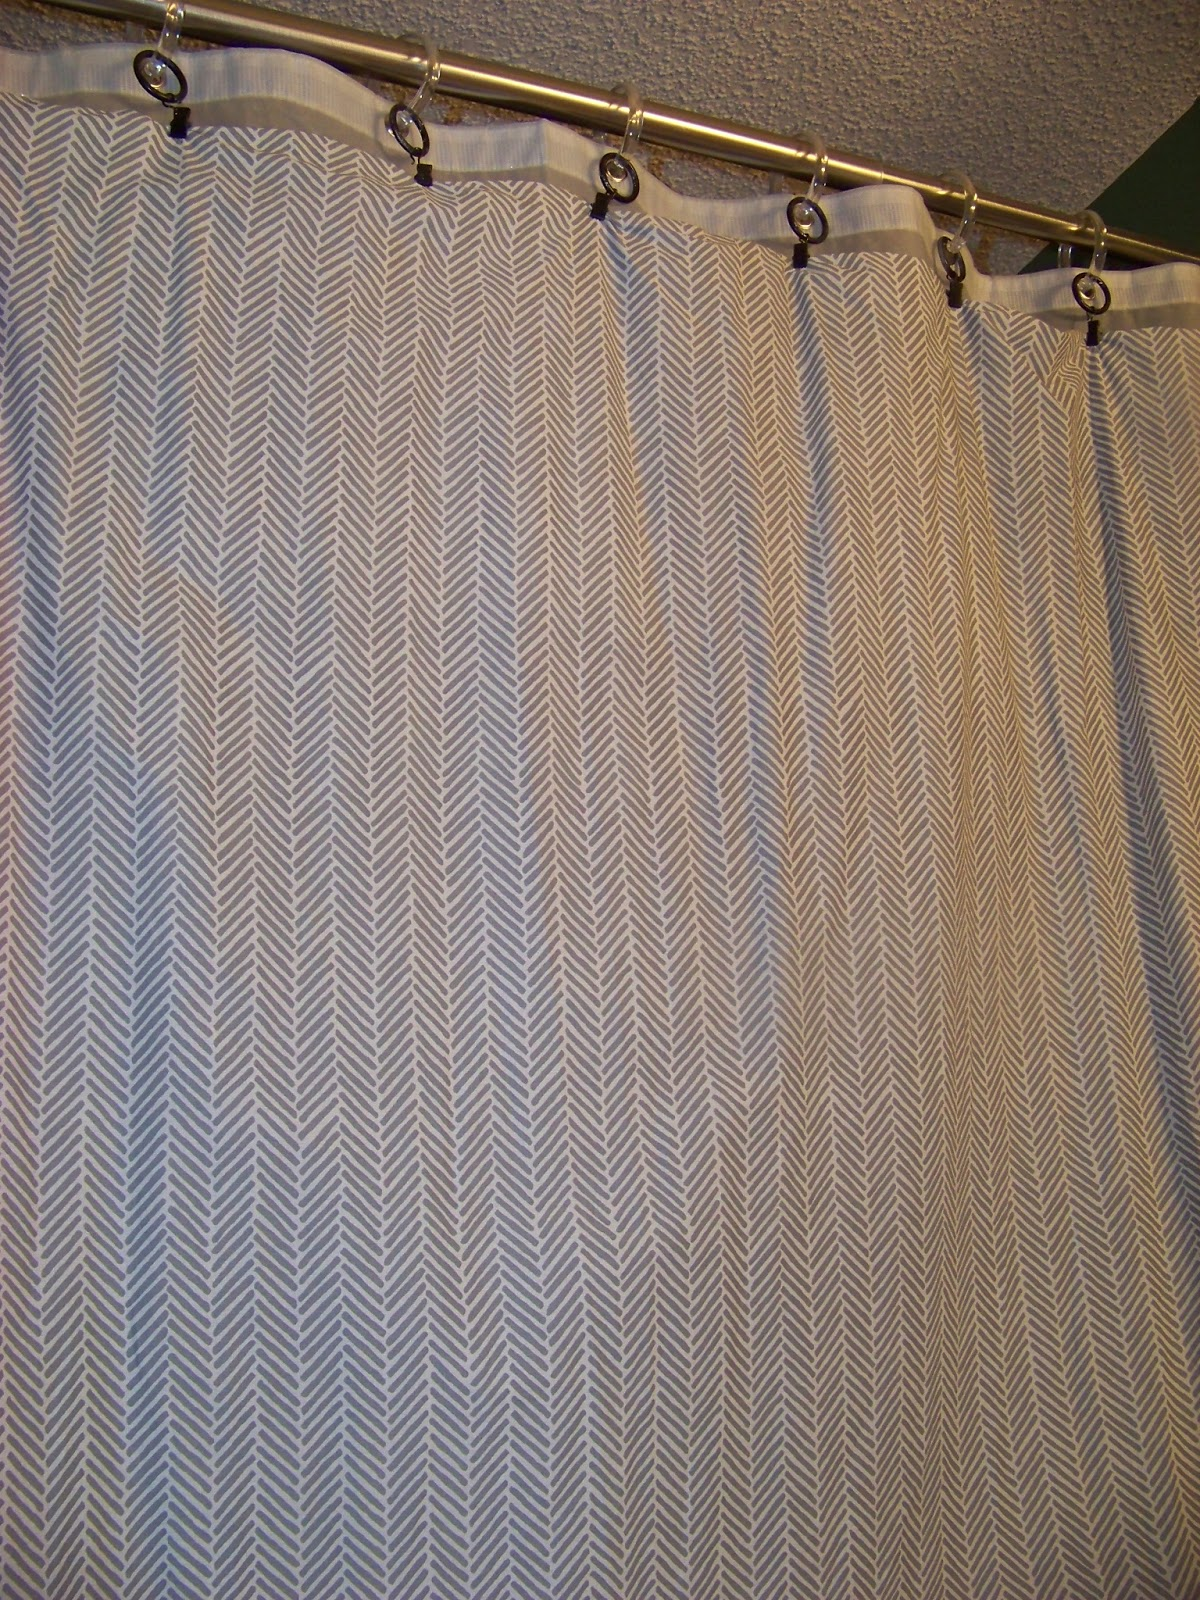 The shower curtain is a chevron herringbone top sheet from a set of